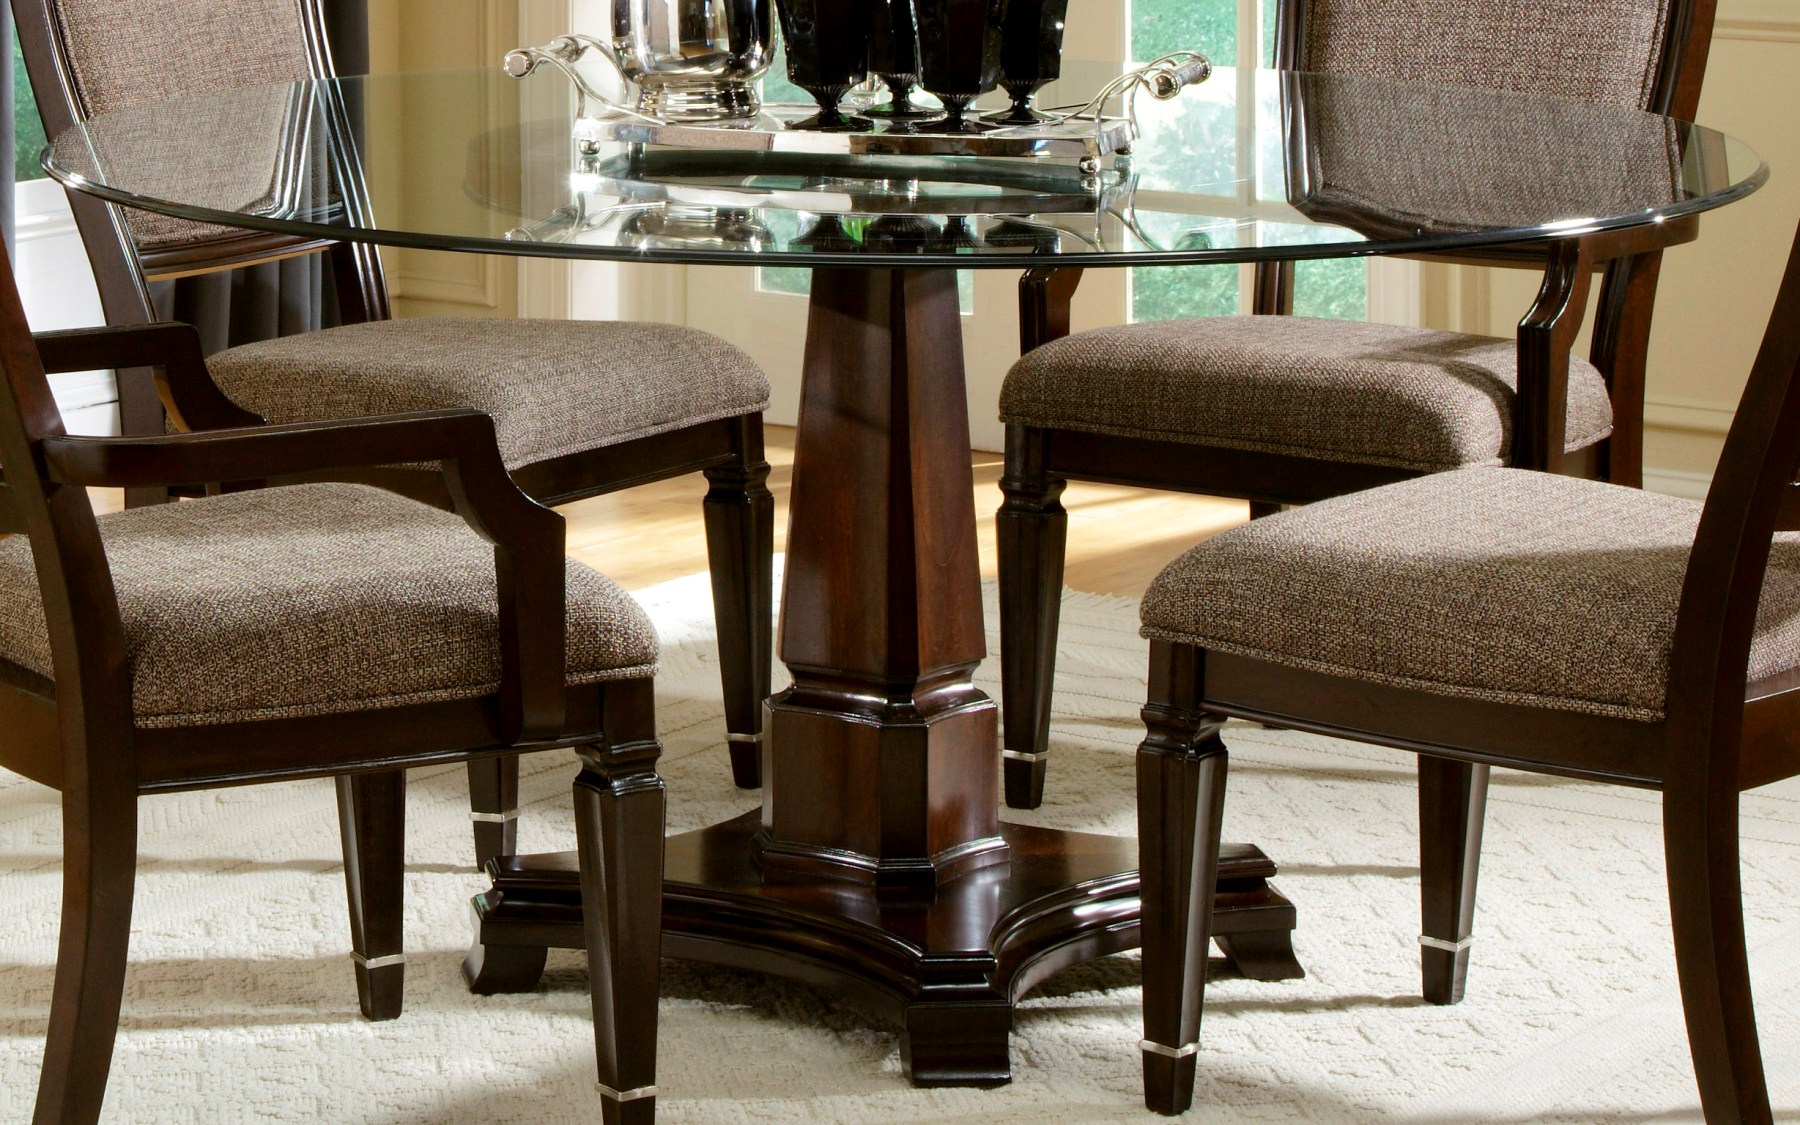 Brown Wooden Dining Table With Round Glass On Top. Dining Table Bases for Glass Tops   HomesFeed